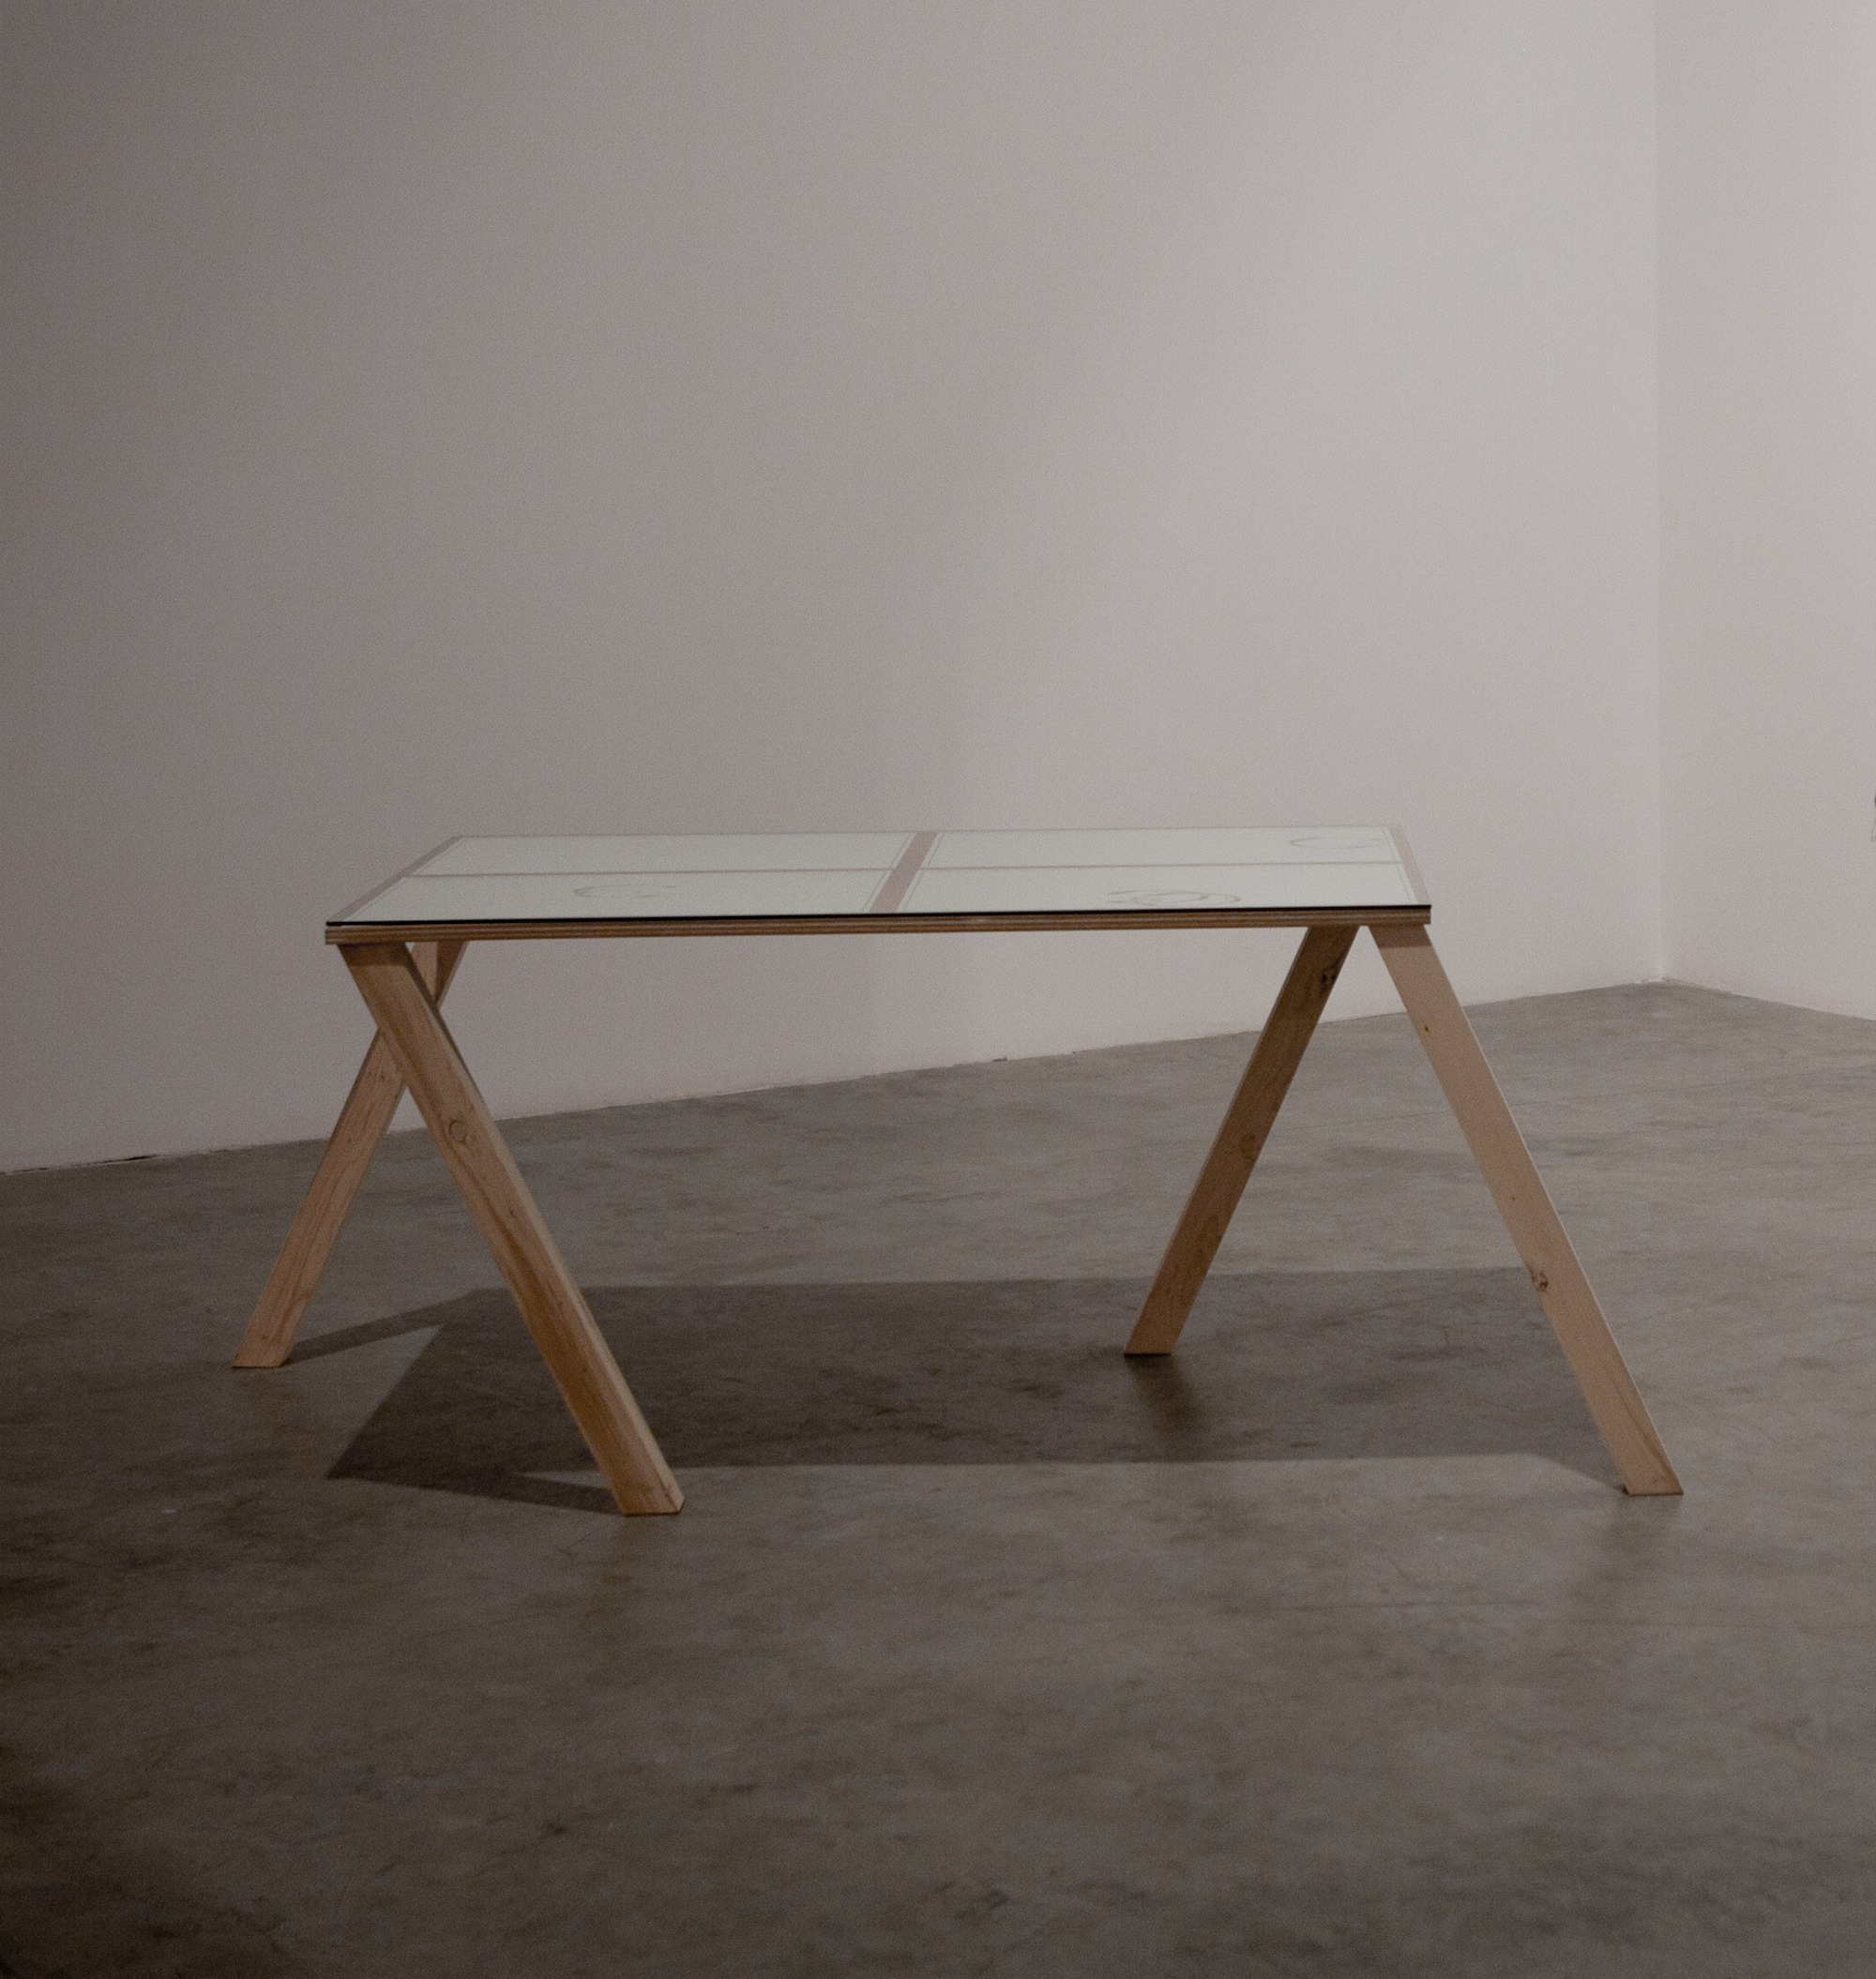 Judith Hopf  Walking Table 2 (in collaboration with Florian Zeyfang) 2012 Table, glass, four drawings Table dimensions: 73.5 x 90 x 192 cm, prints dimensions: 42 x 62 cm (each).